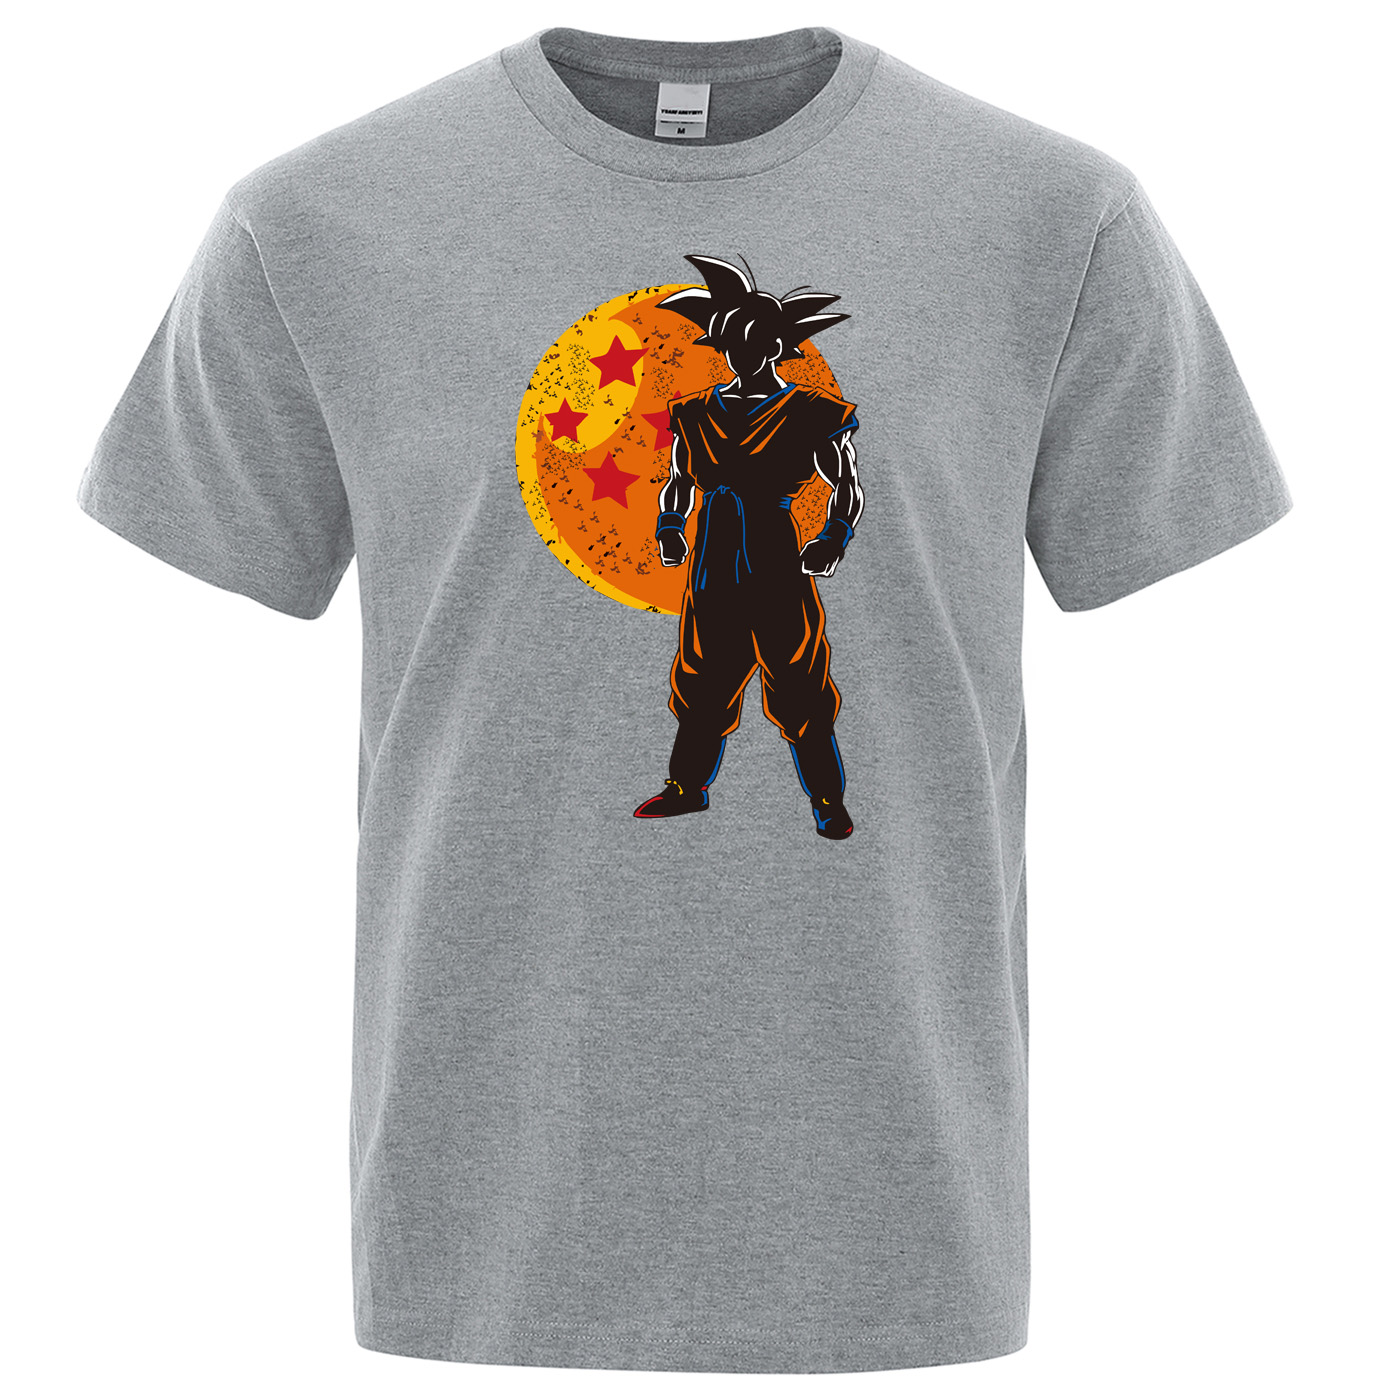 Men's T Shirts 2019 Summer Short Sleeve Men TShirt Japanese Anime Dragon Ball Z Tops Tee Fashion Harajuku 100% Cotton T-shirt